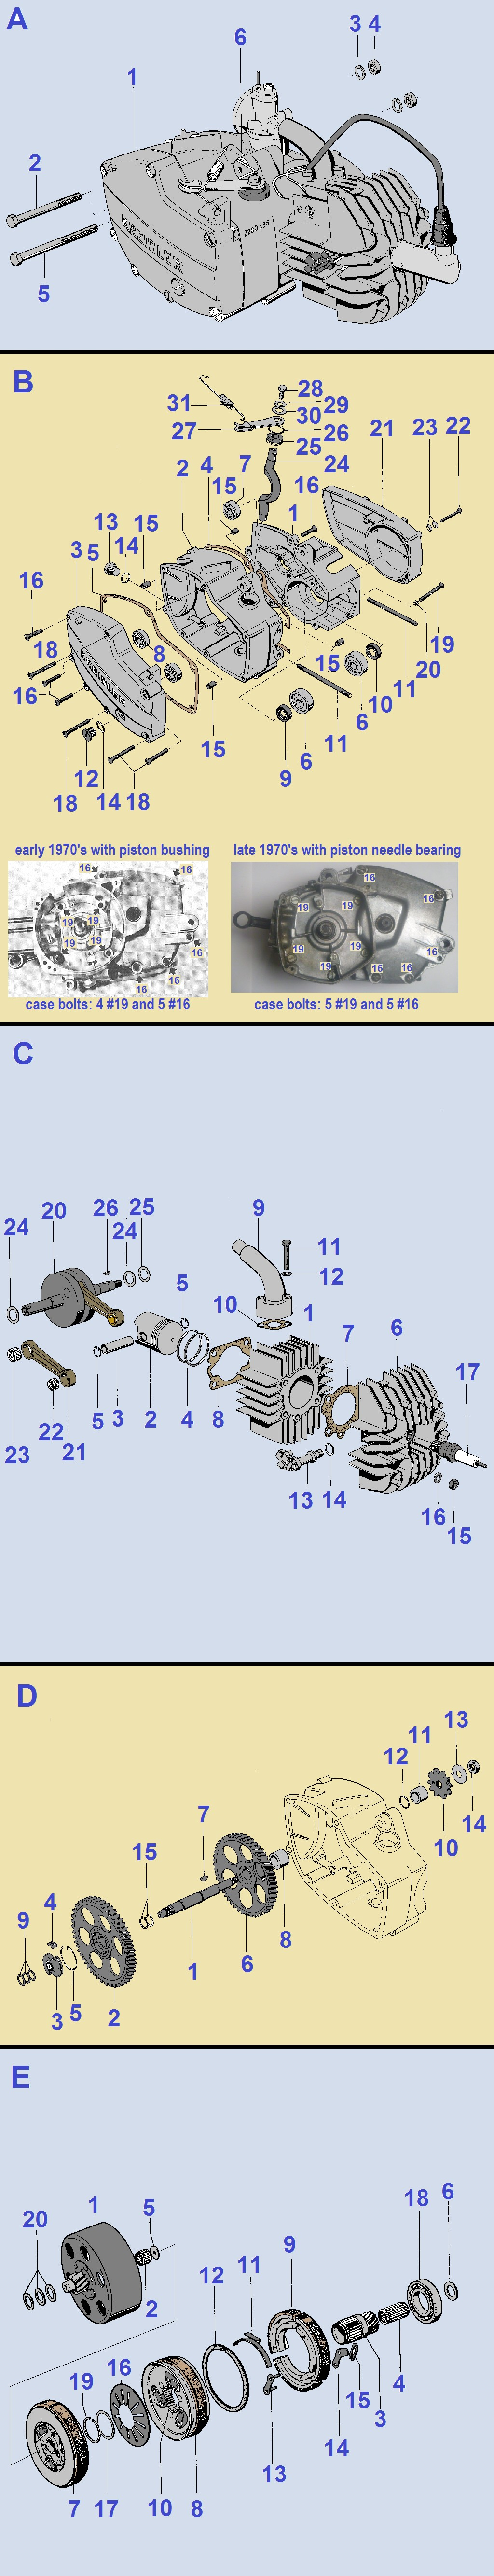 Honda Elite 80 Parts Diagram My Wiring Myrons Mopeds Of